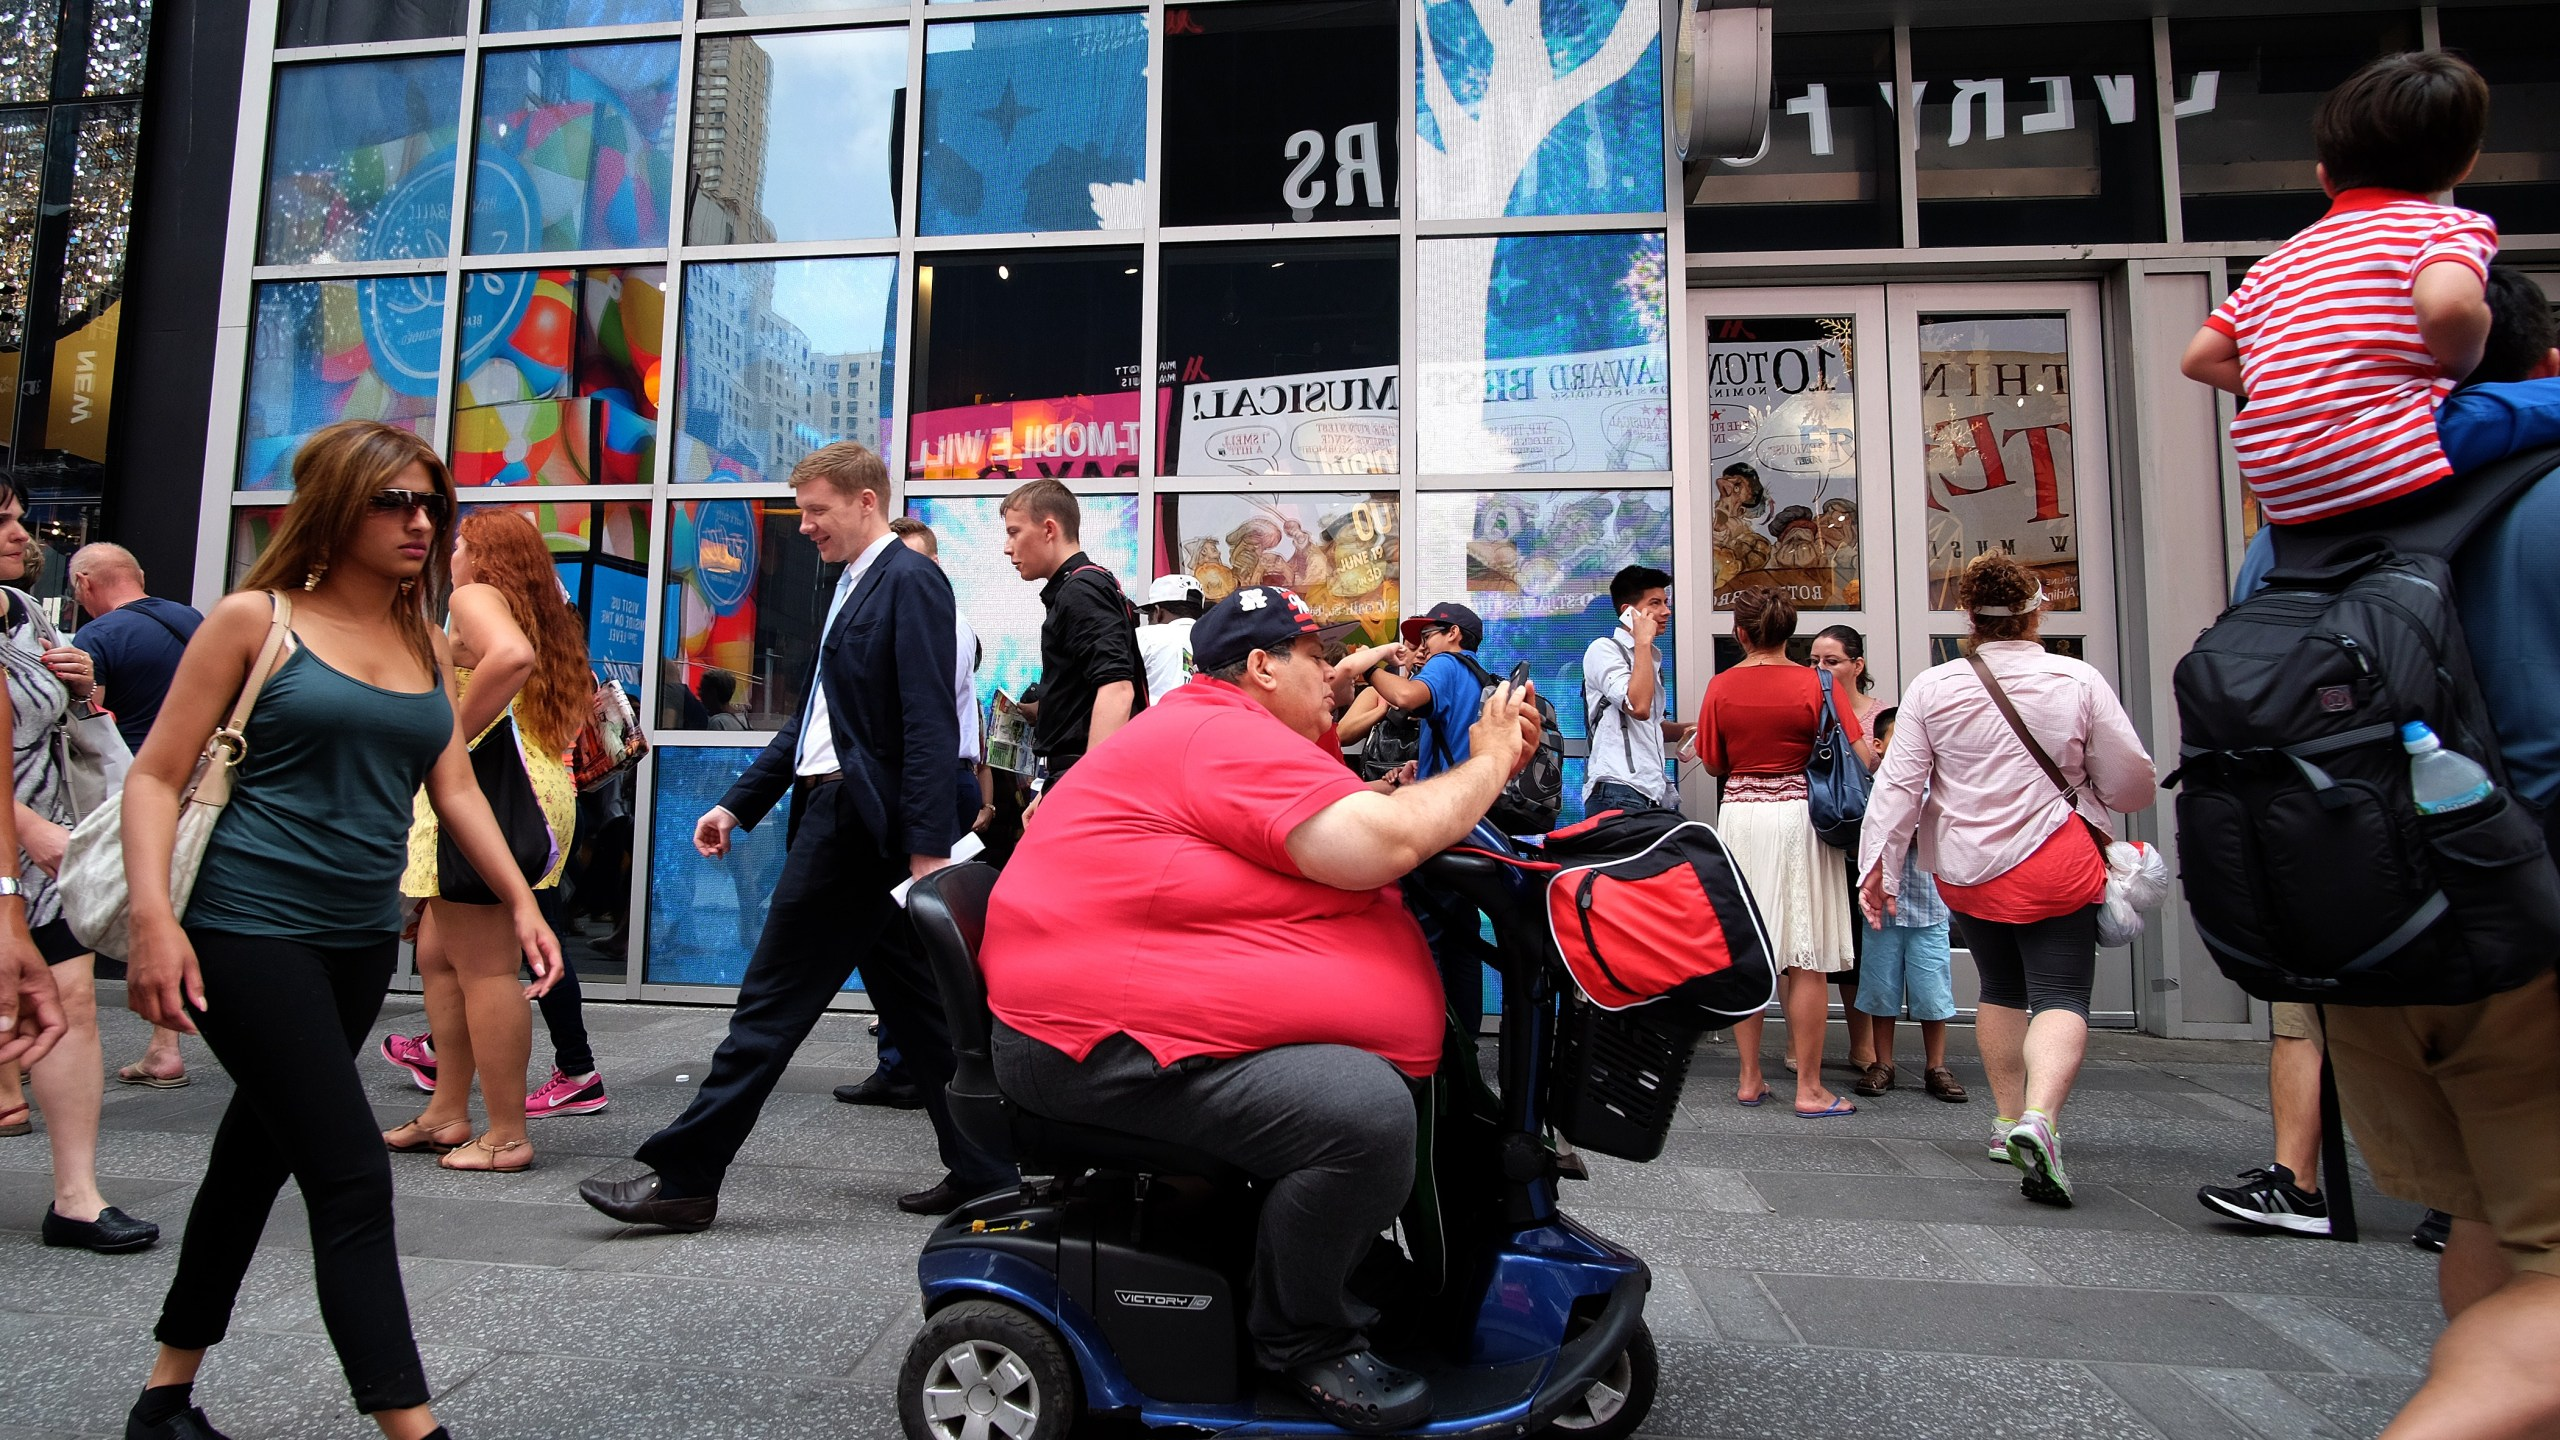 A man on an electric scooter makes his way with other pedestrians in New York on July 1, 2015. (Credit: Jewel Samad / AFP / Getty Images)